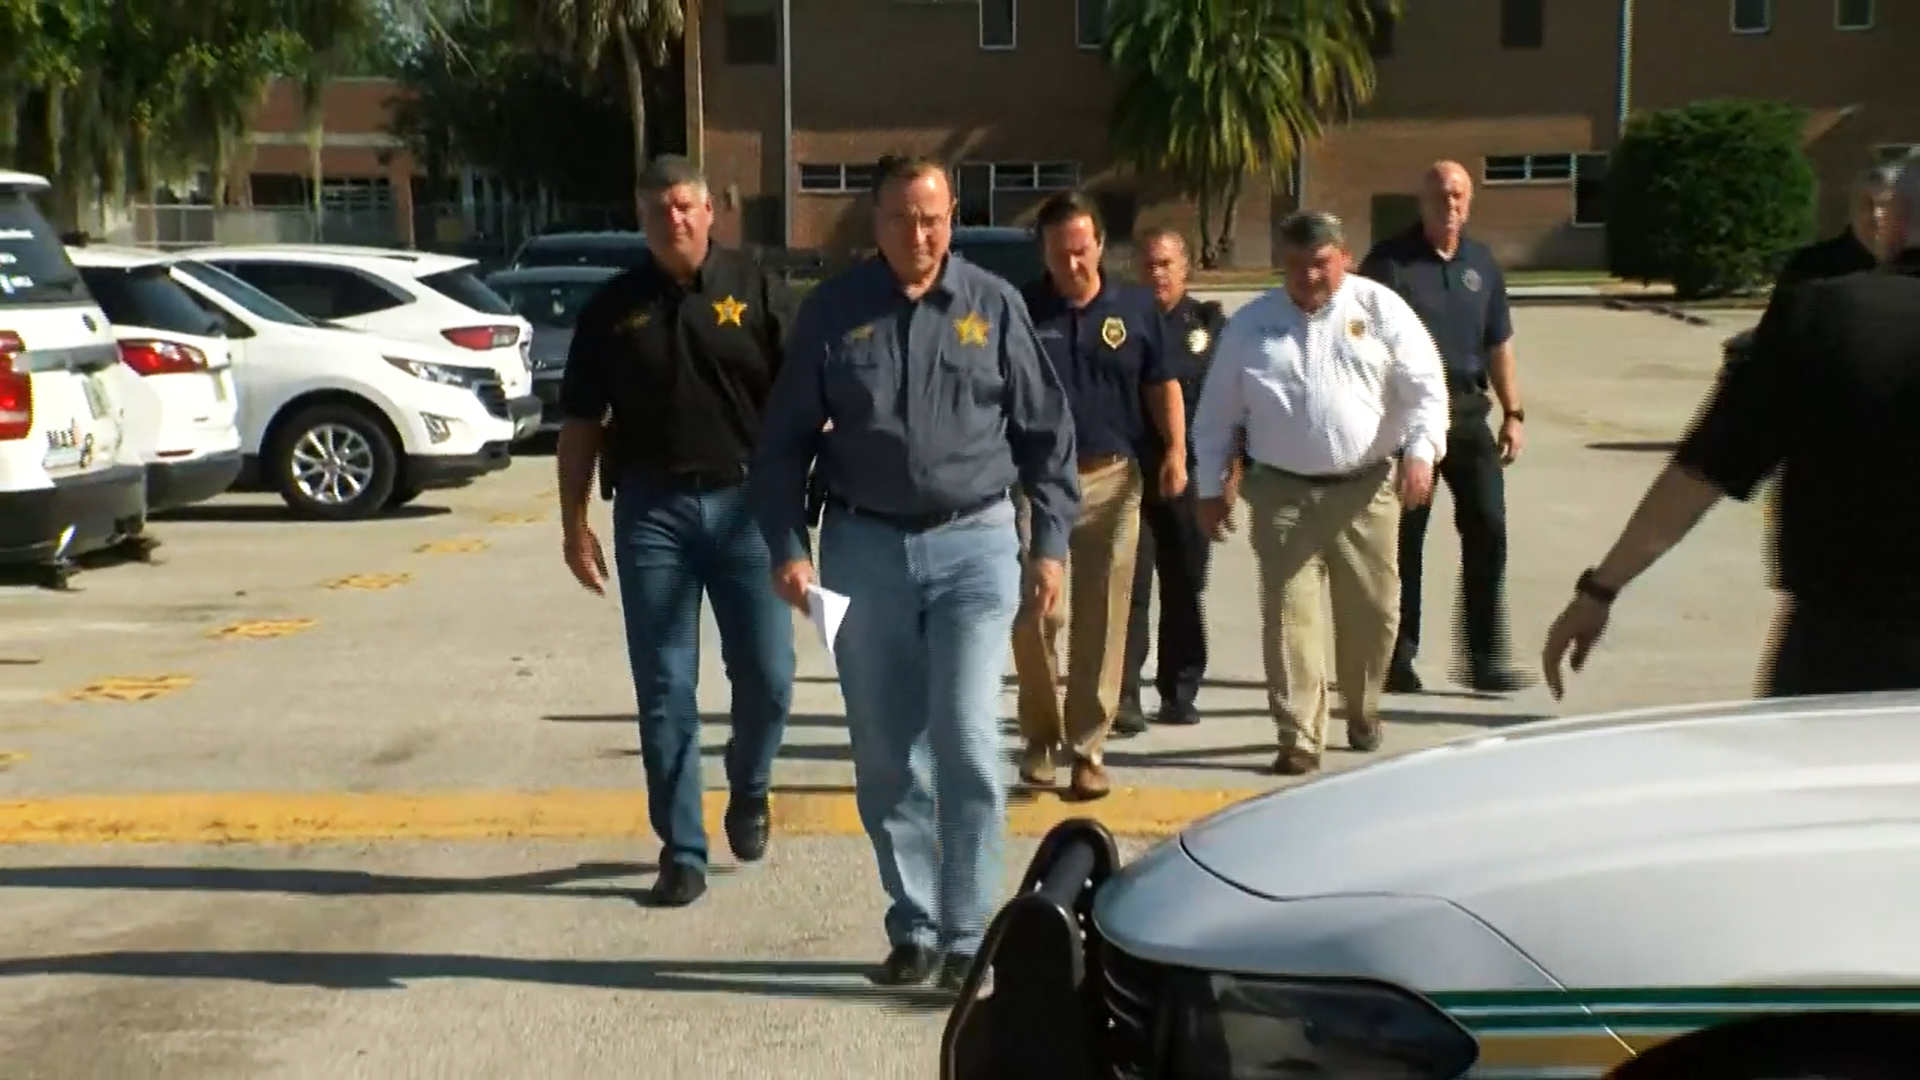 4 people killed, including baby, in shooting at Florida home